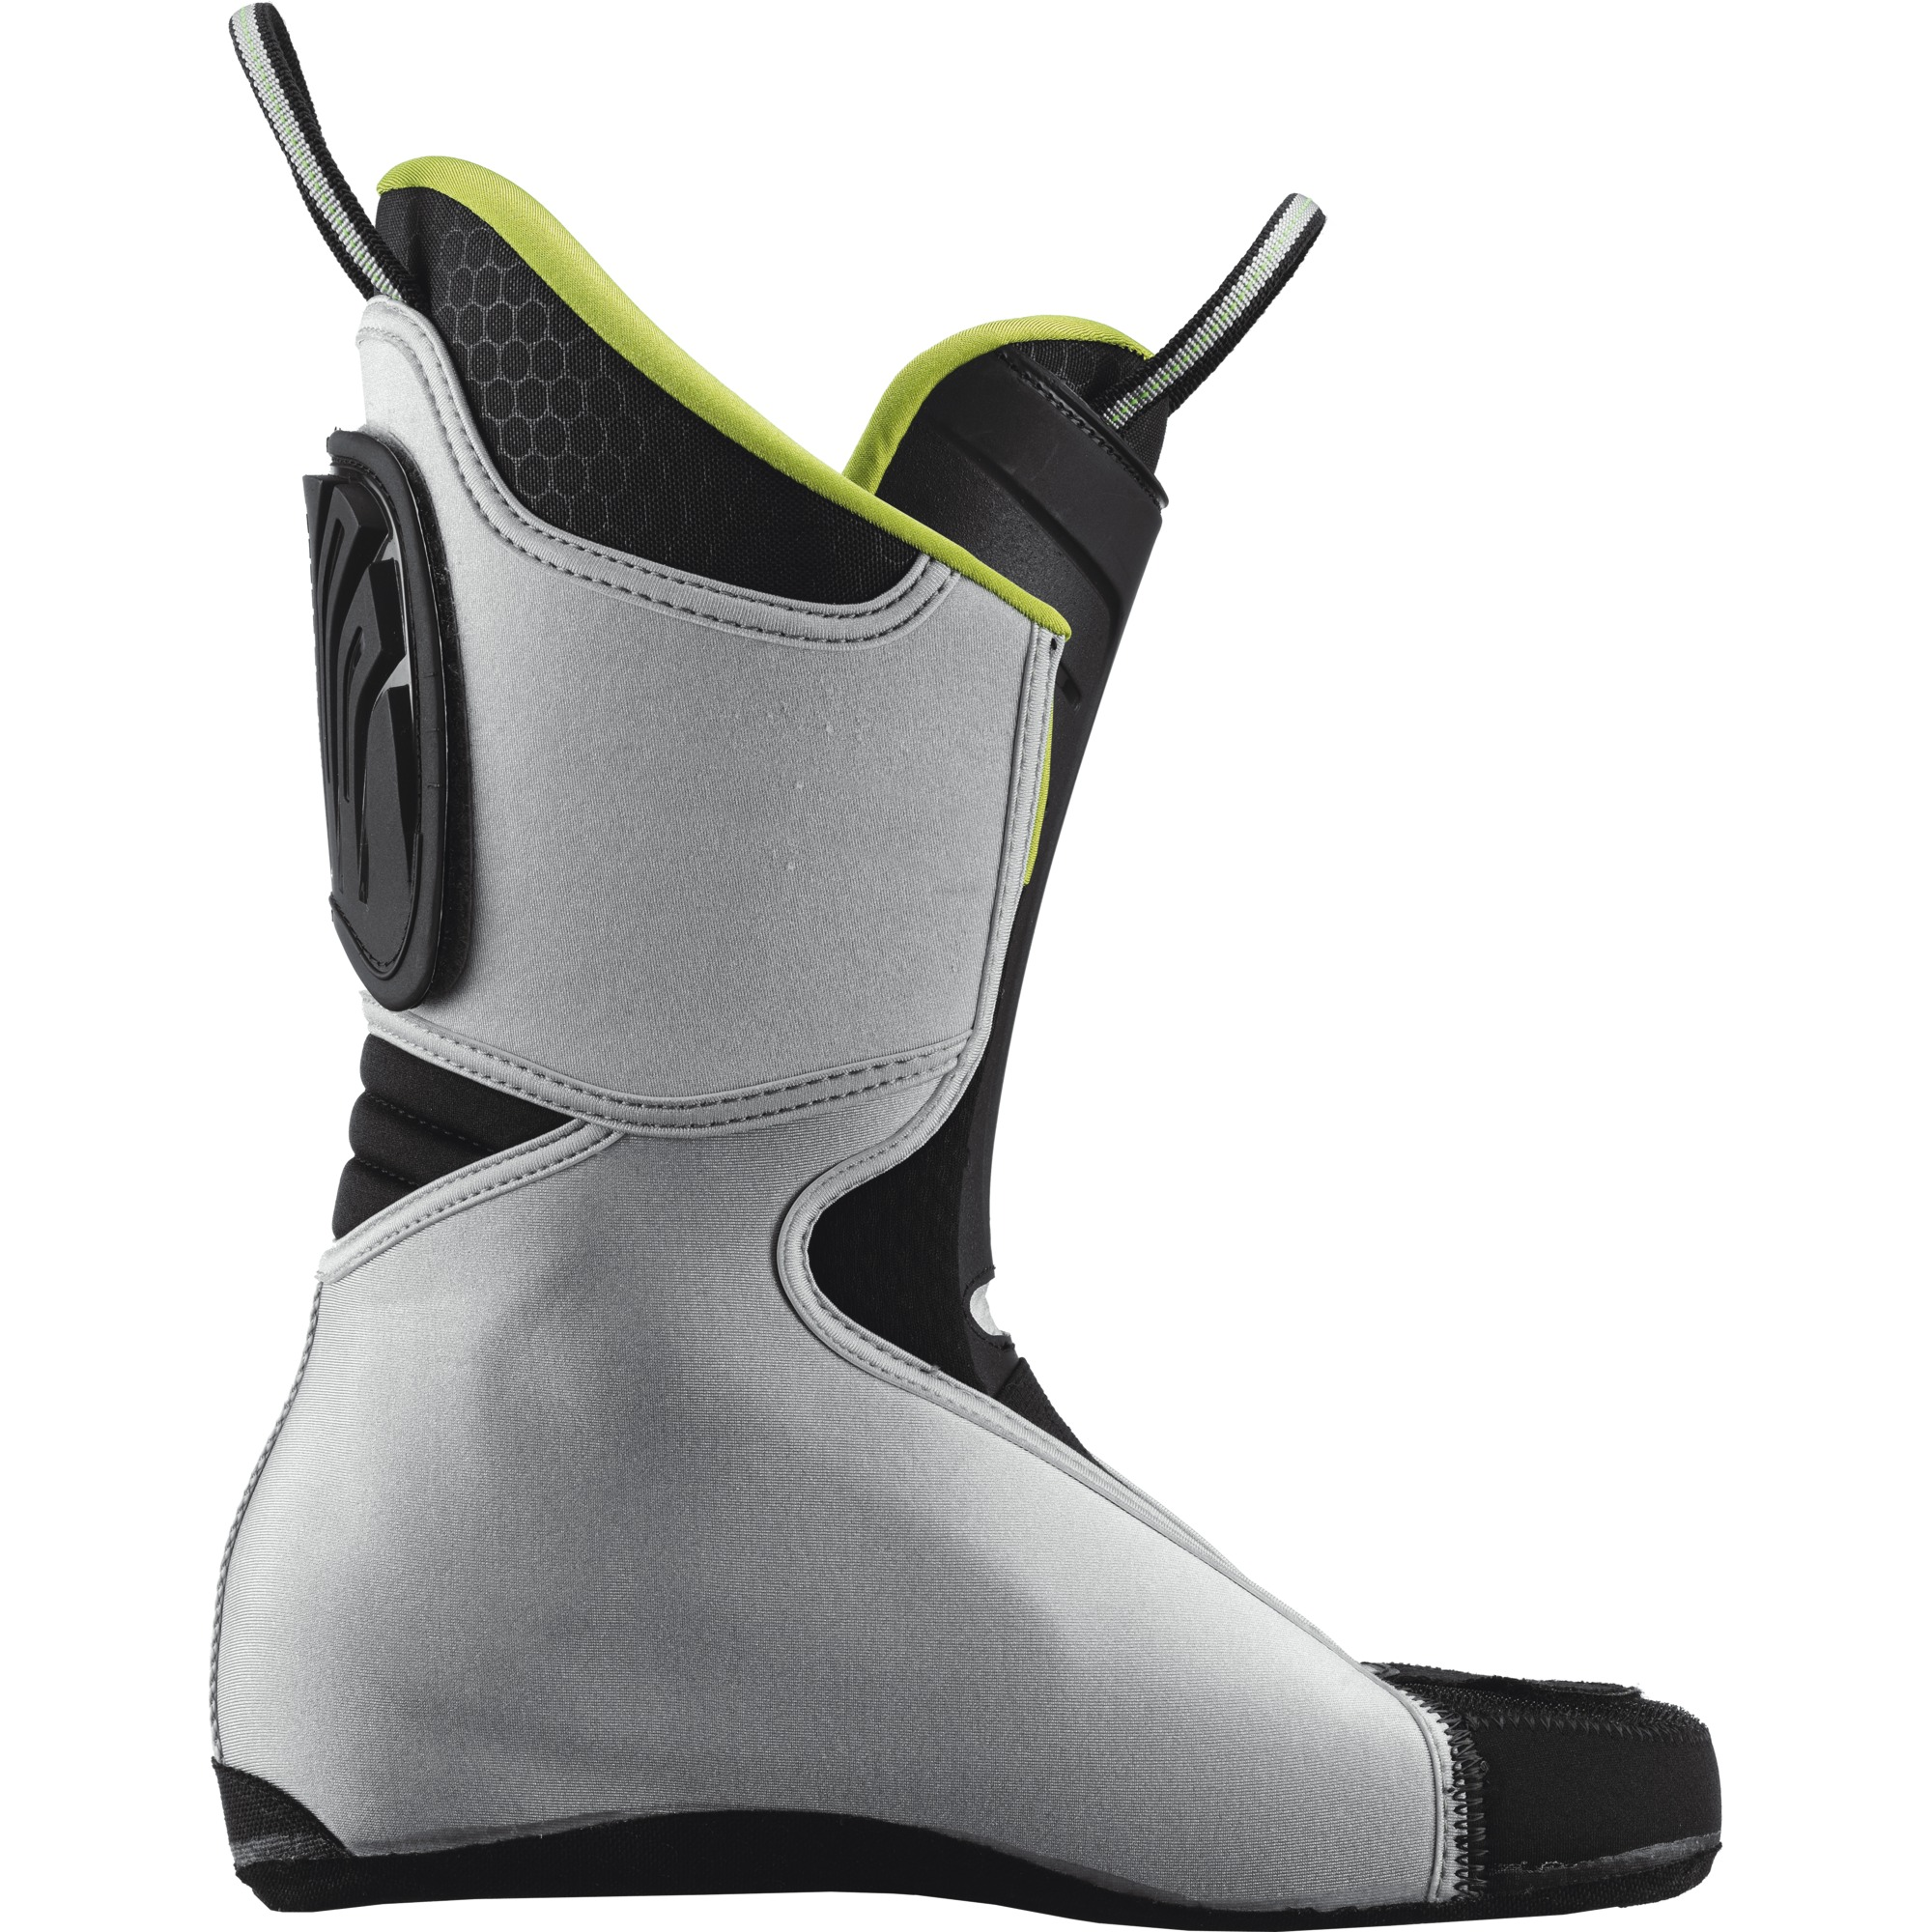 SCOTT G1 110 Powerfit Ski Boot